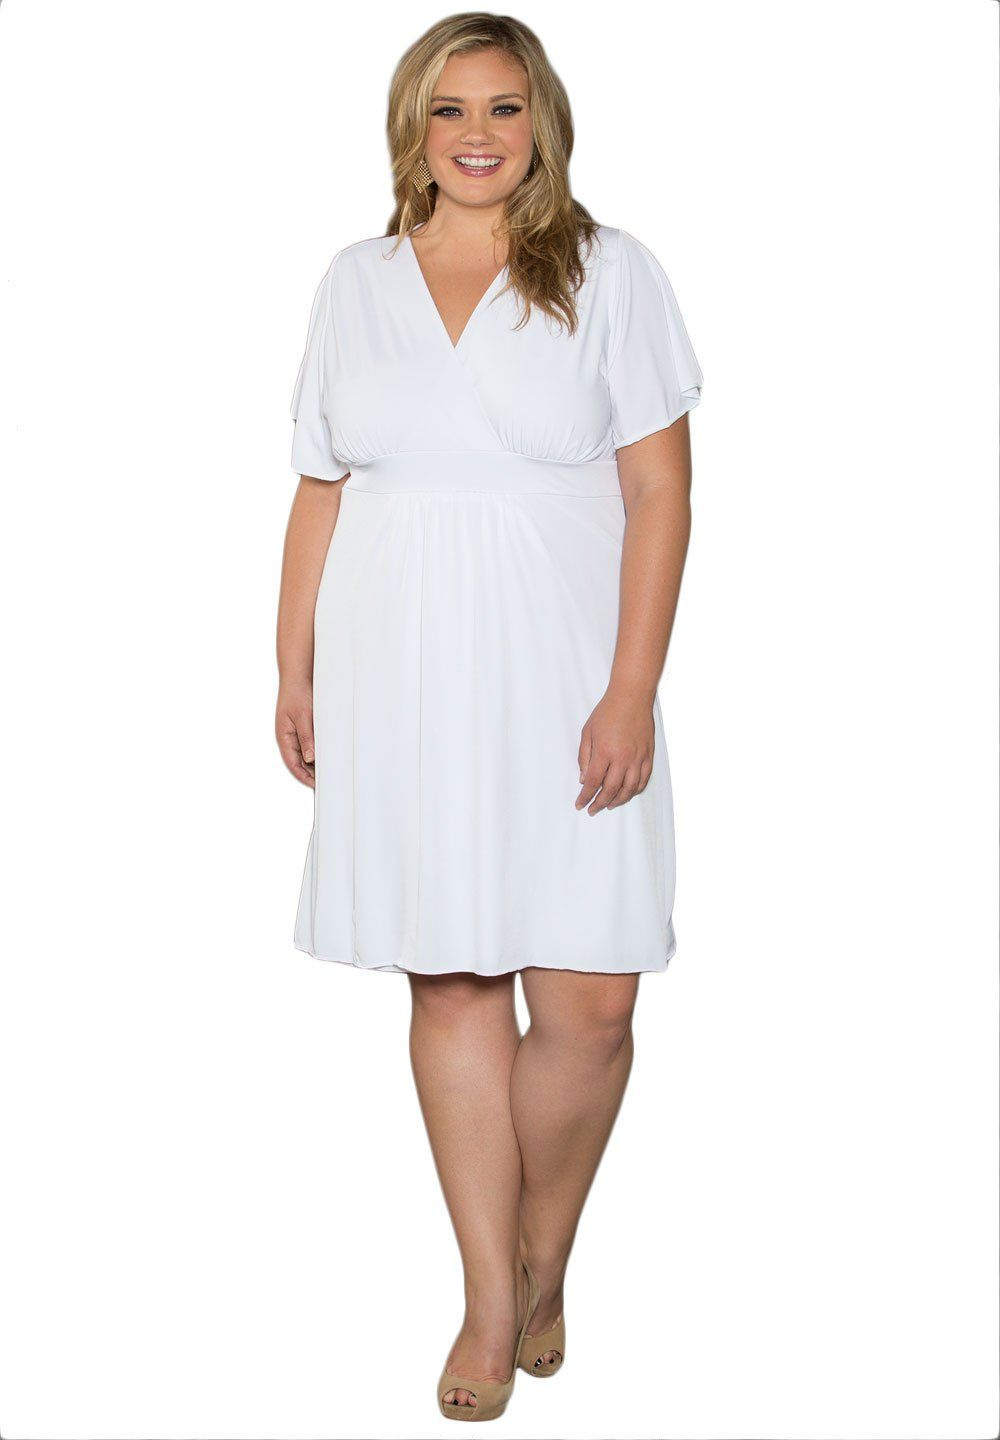 Sealed With A Kiss Designs Plus Size Classic V Neck Dress In White Amazon Clothing White Short Dress Casual Dresses Plus Size Casual White Dress [ 1440 x 1000 Pixel ]